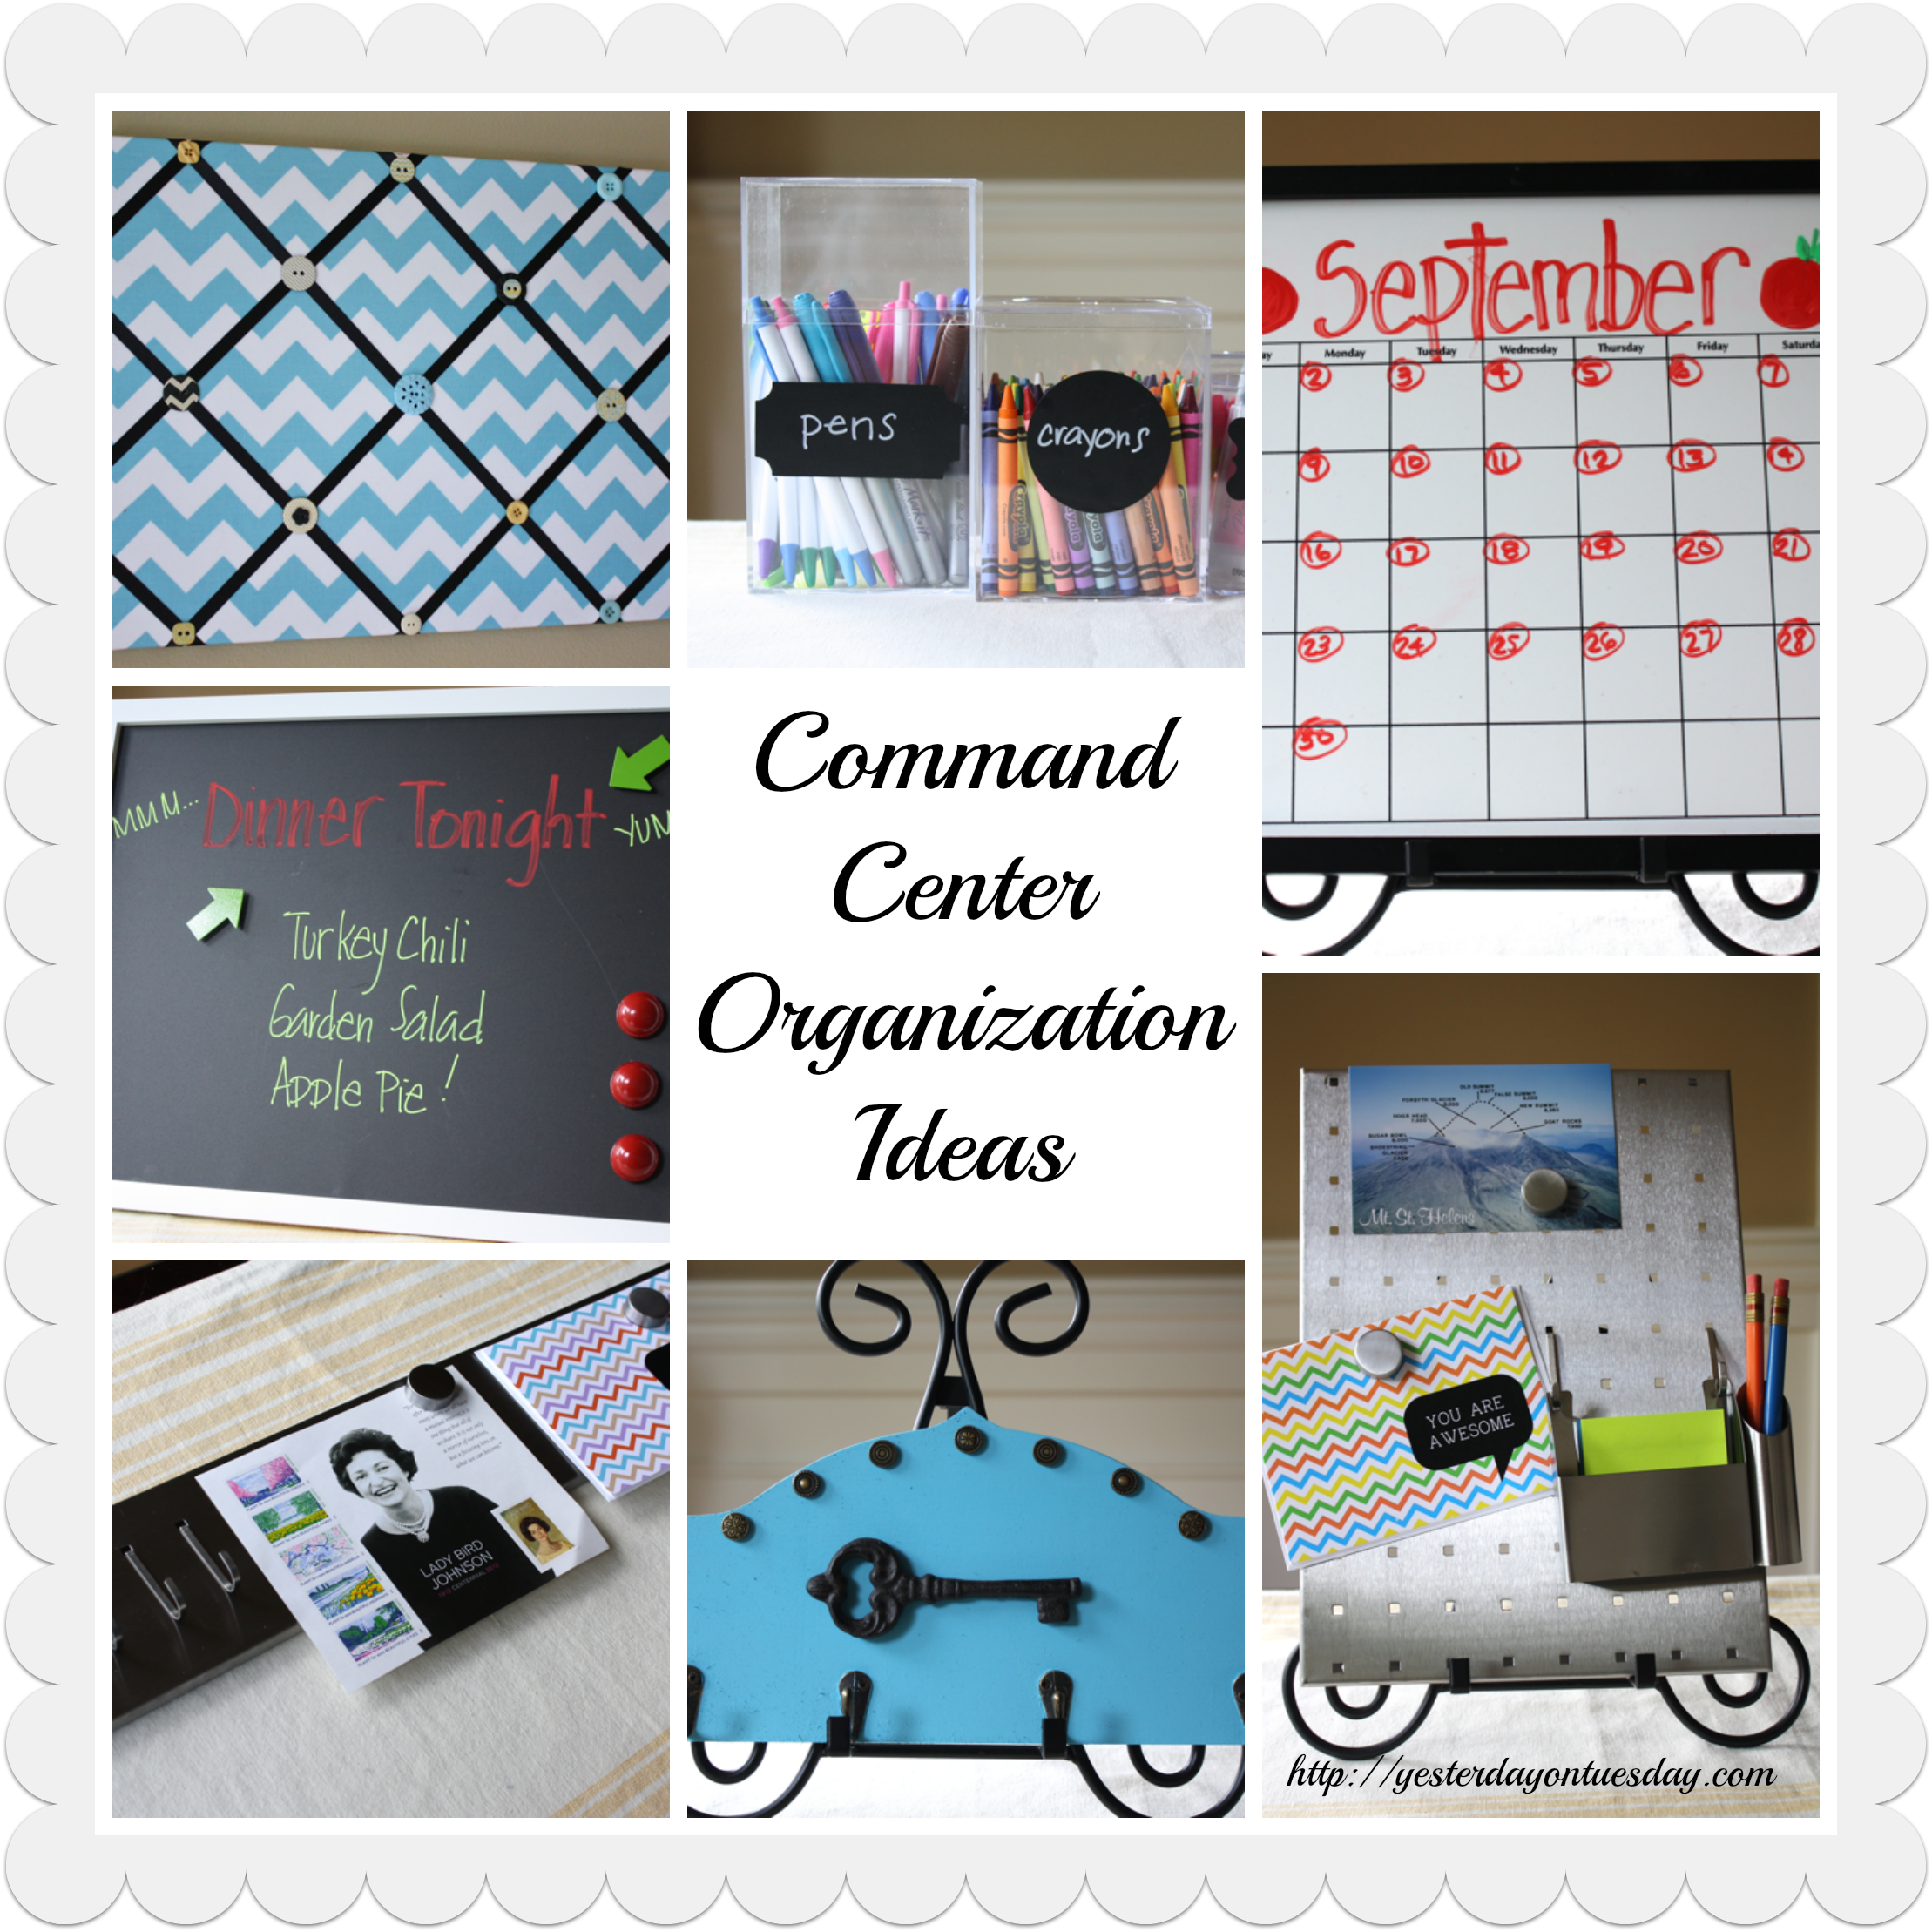 Command Center Organization Ideas